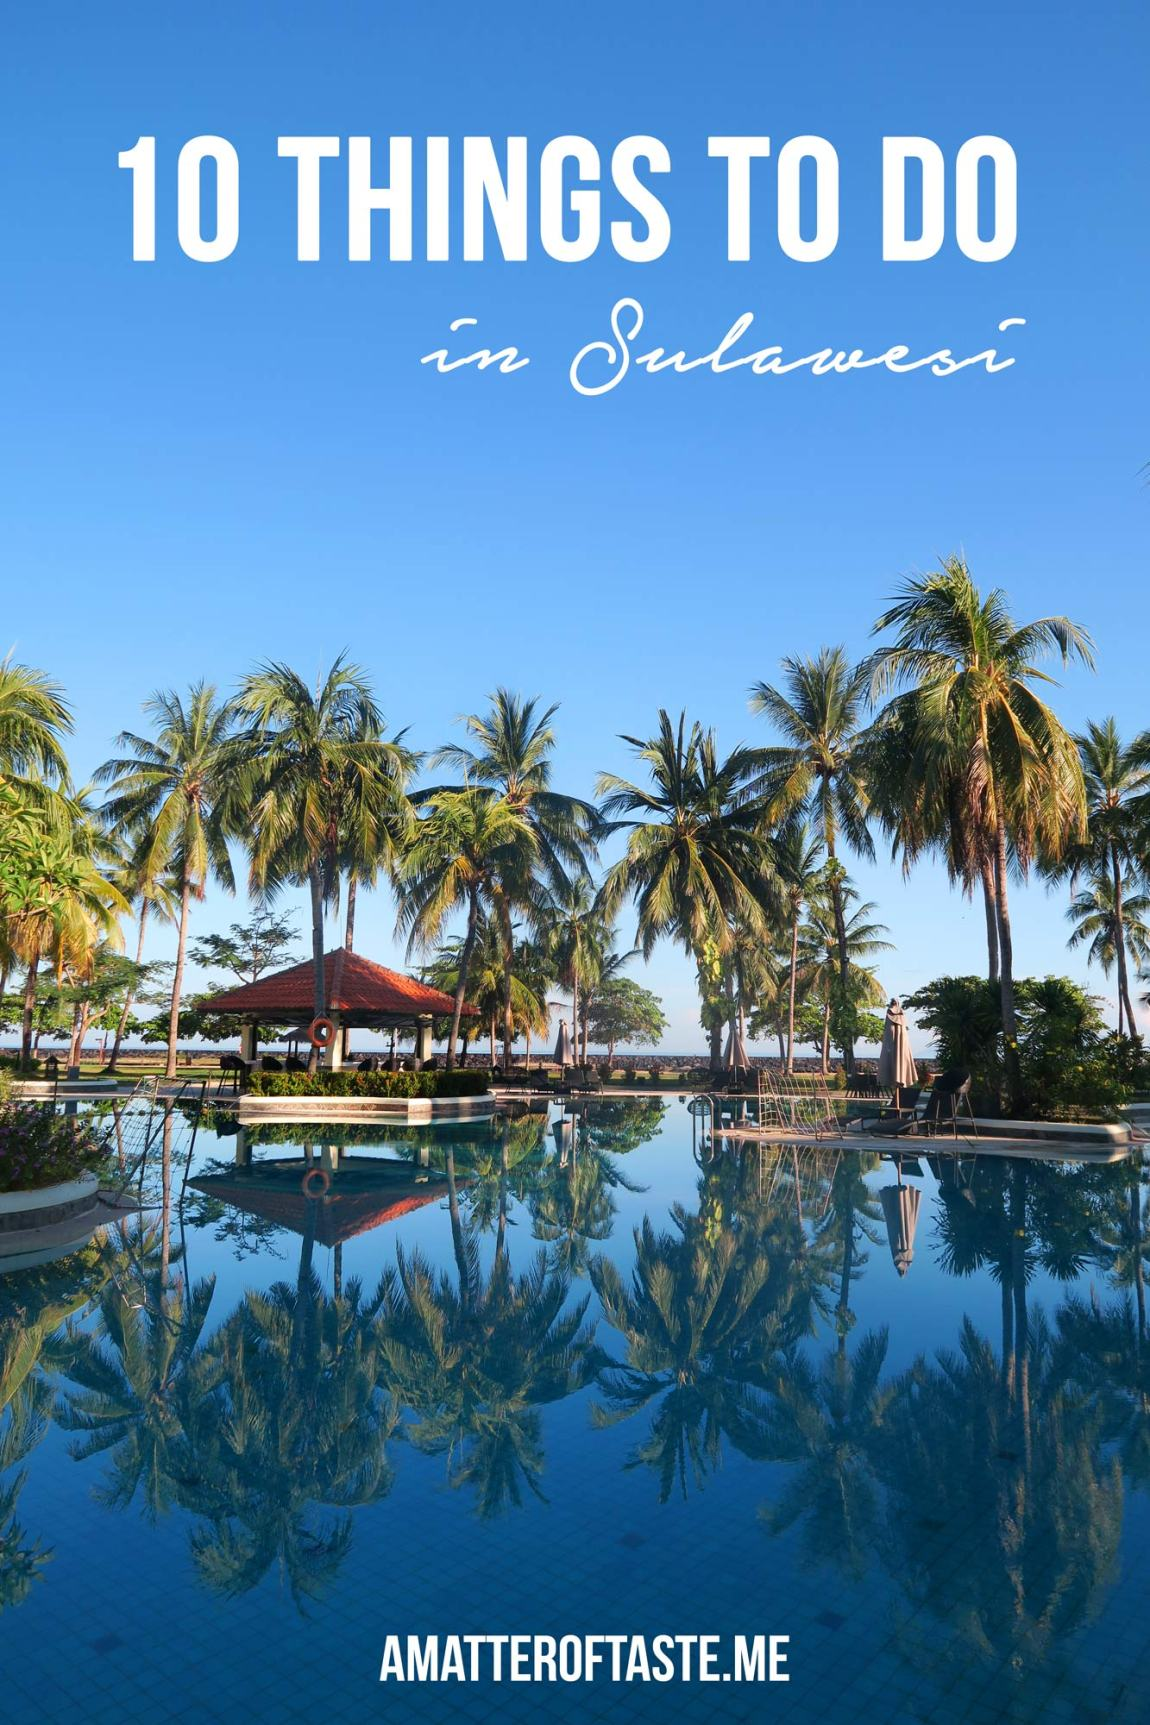 10things-sulawesi